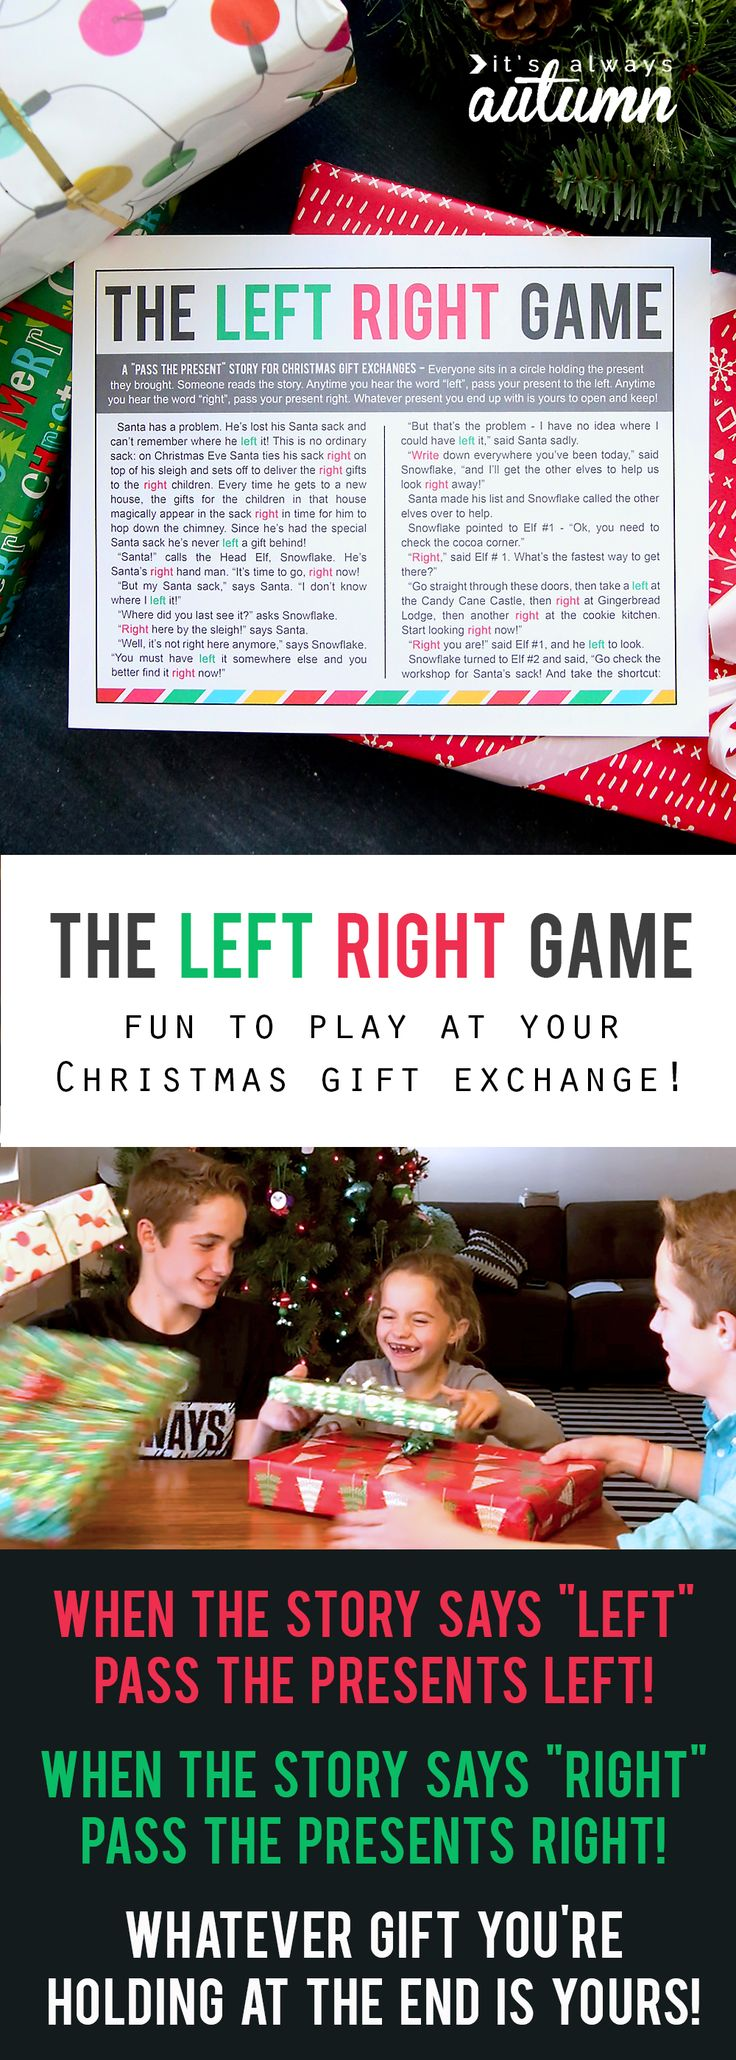 Ever played the left right game at your Christmas gift exchange? It's so much fun! No stealing presents from each other, so no one is disappointed!